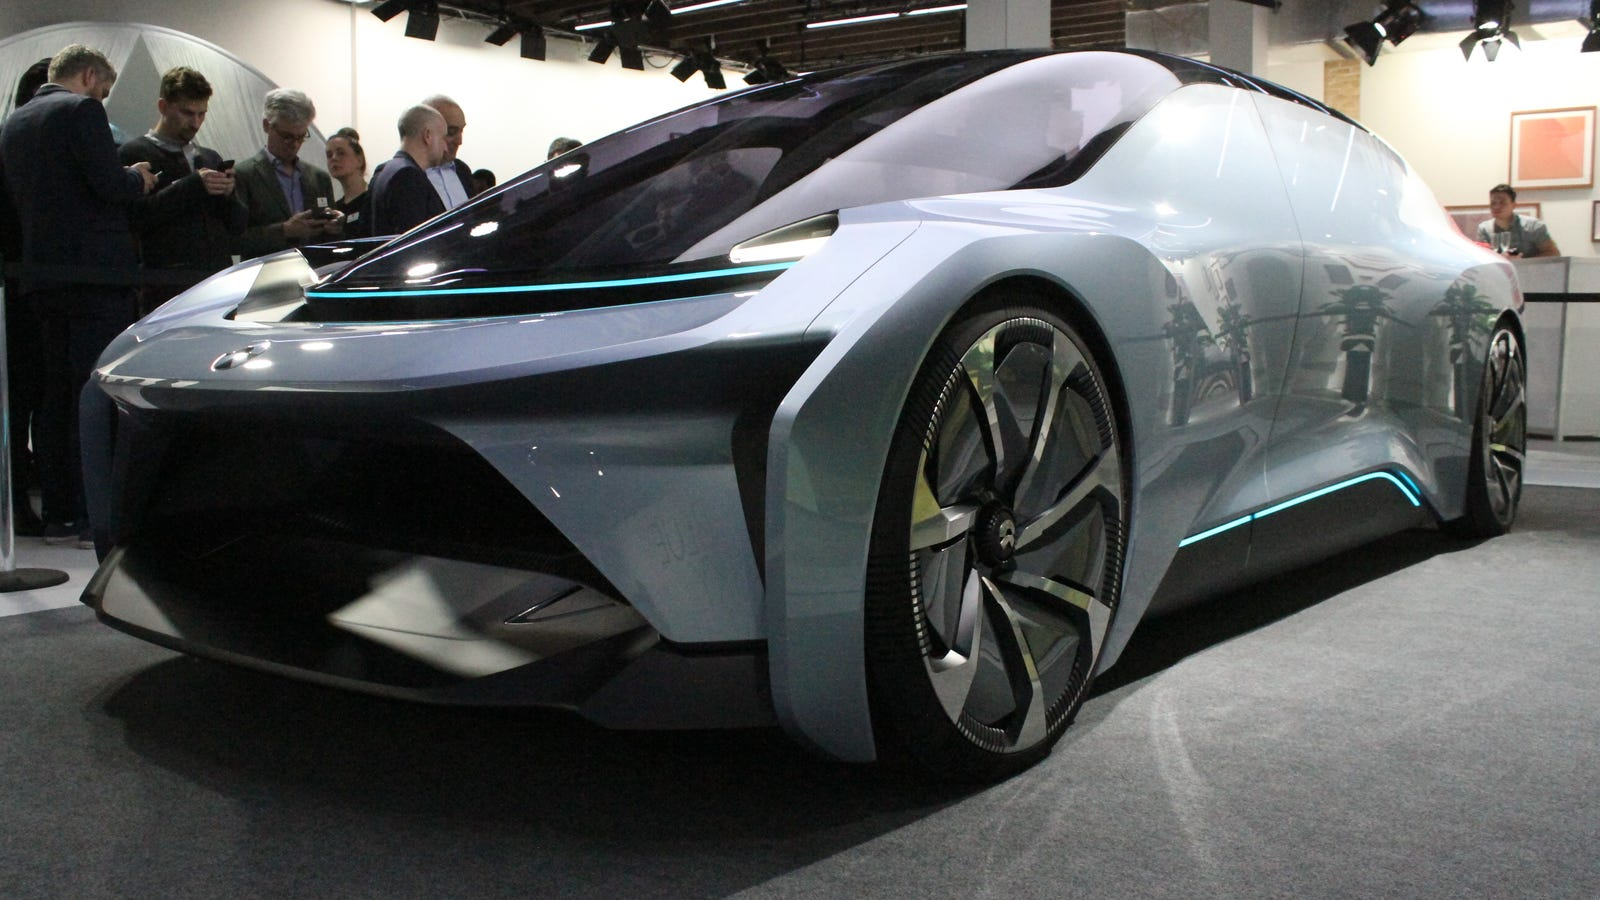 There S A New Chinese Electric Autonomous Concept Car And It Looks Awesome